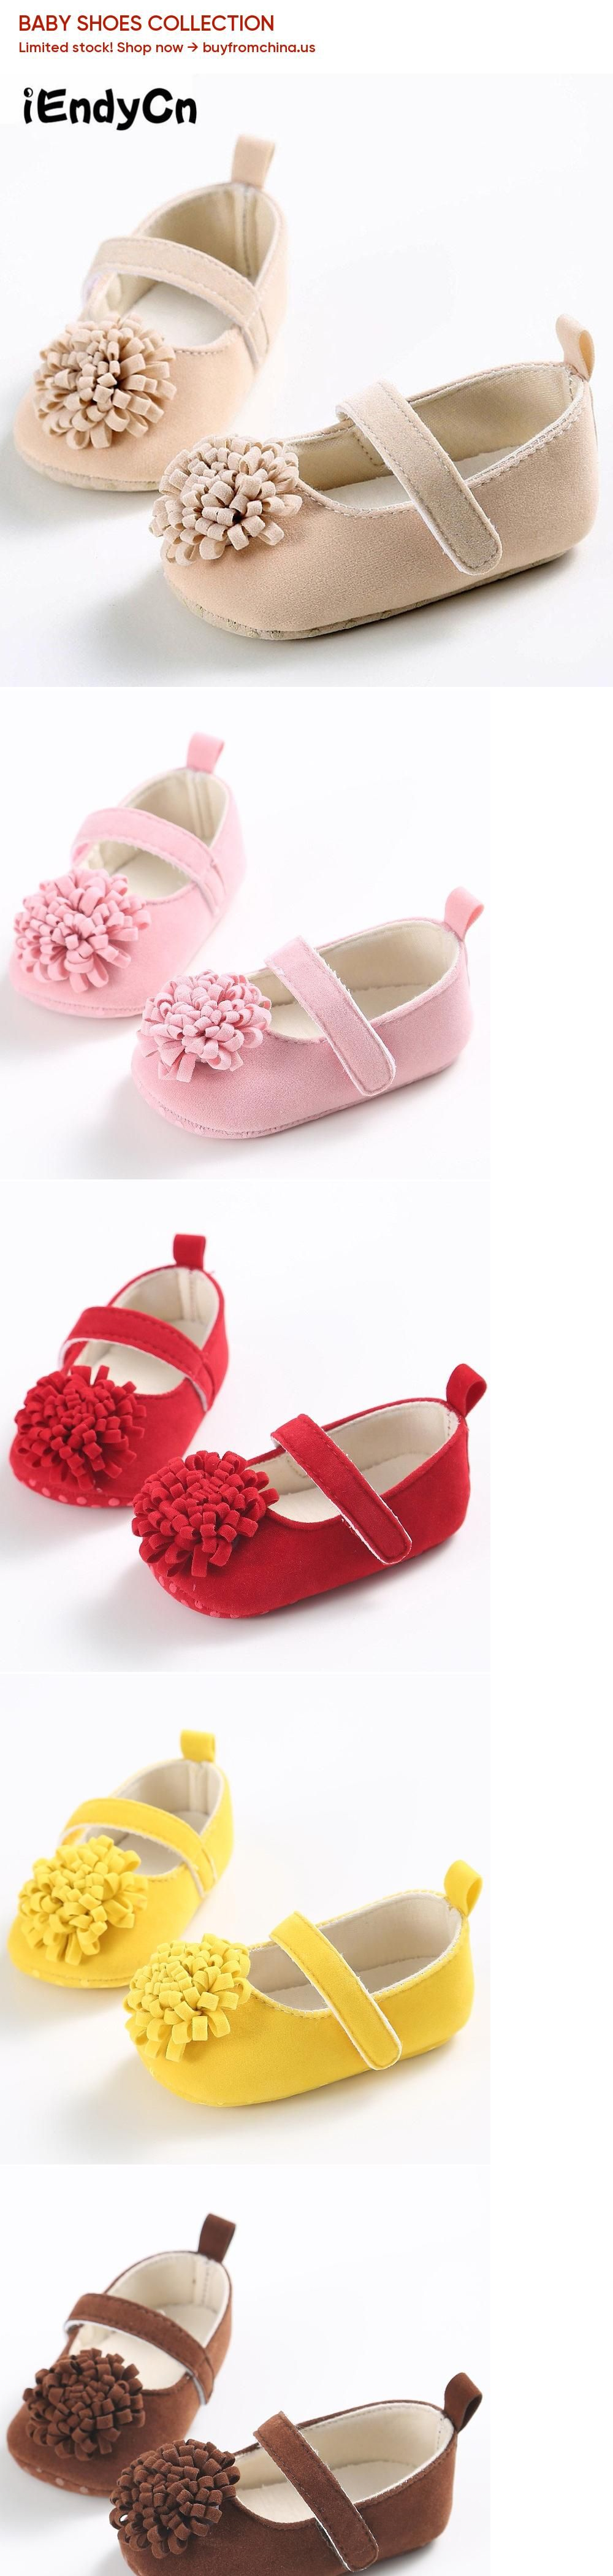 0-1 Year old Spring and Summer Autumn Female Baby Shoes Soft Bottom Flowers Princess Series Baby YD221